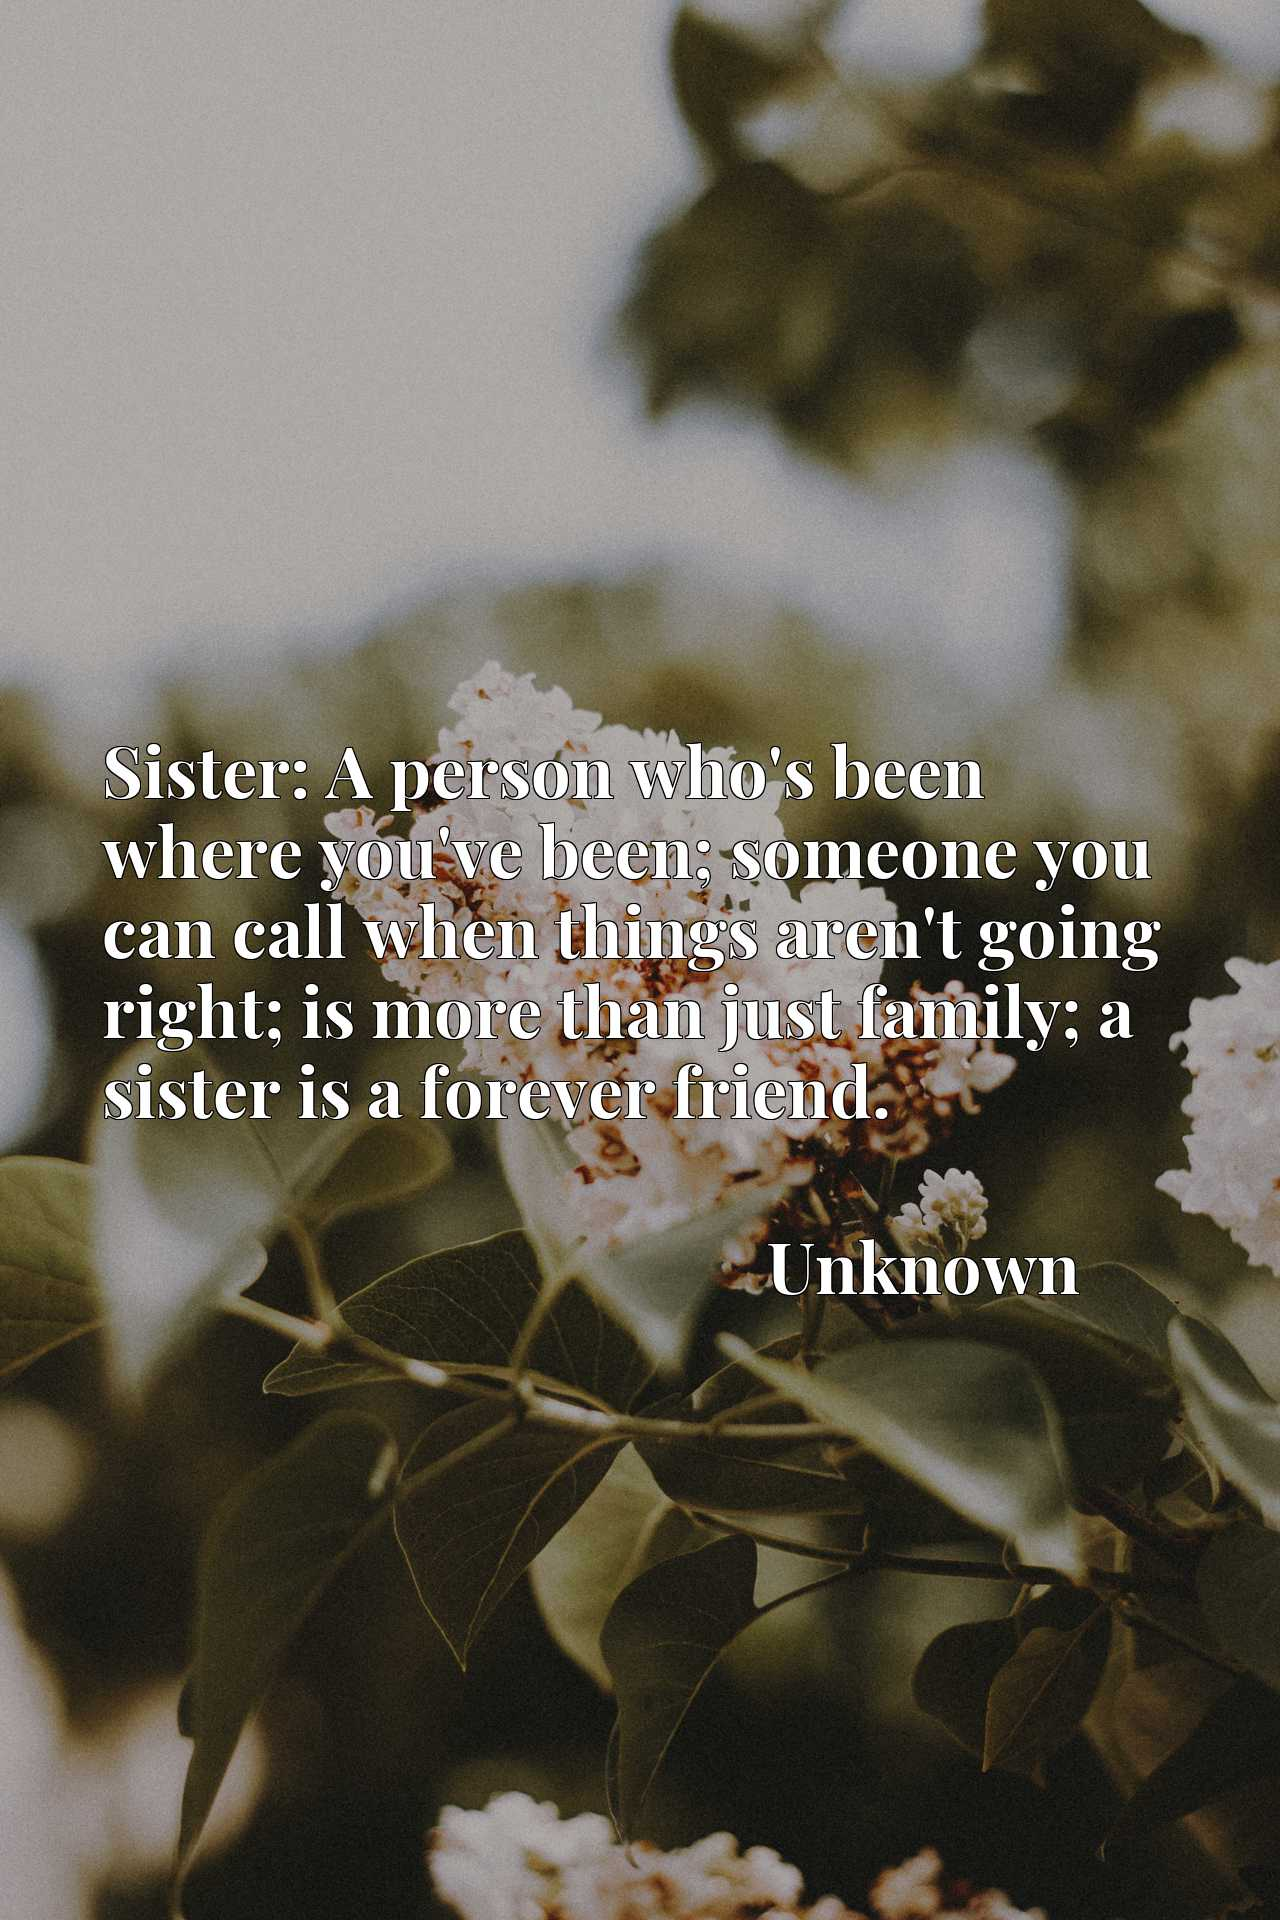 Sister: A person who's been where you've been; someone you can call when things aren't going right; is more than just family; a sister is a forever friend.